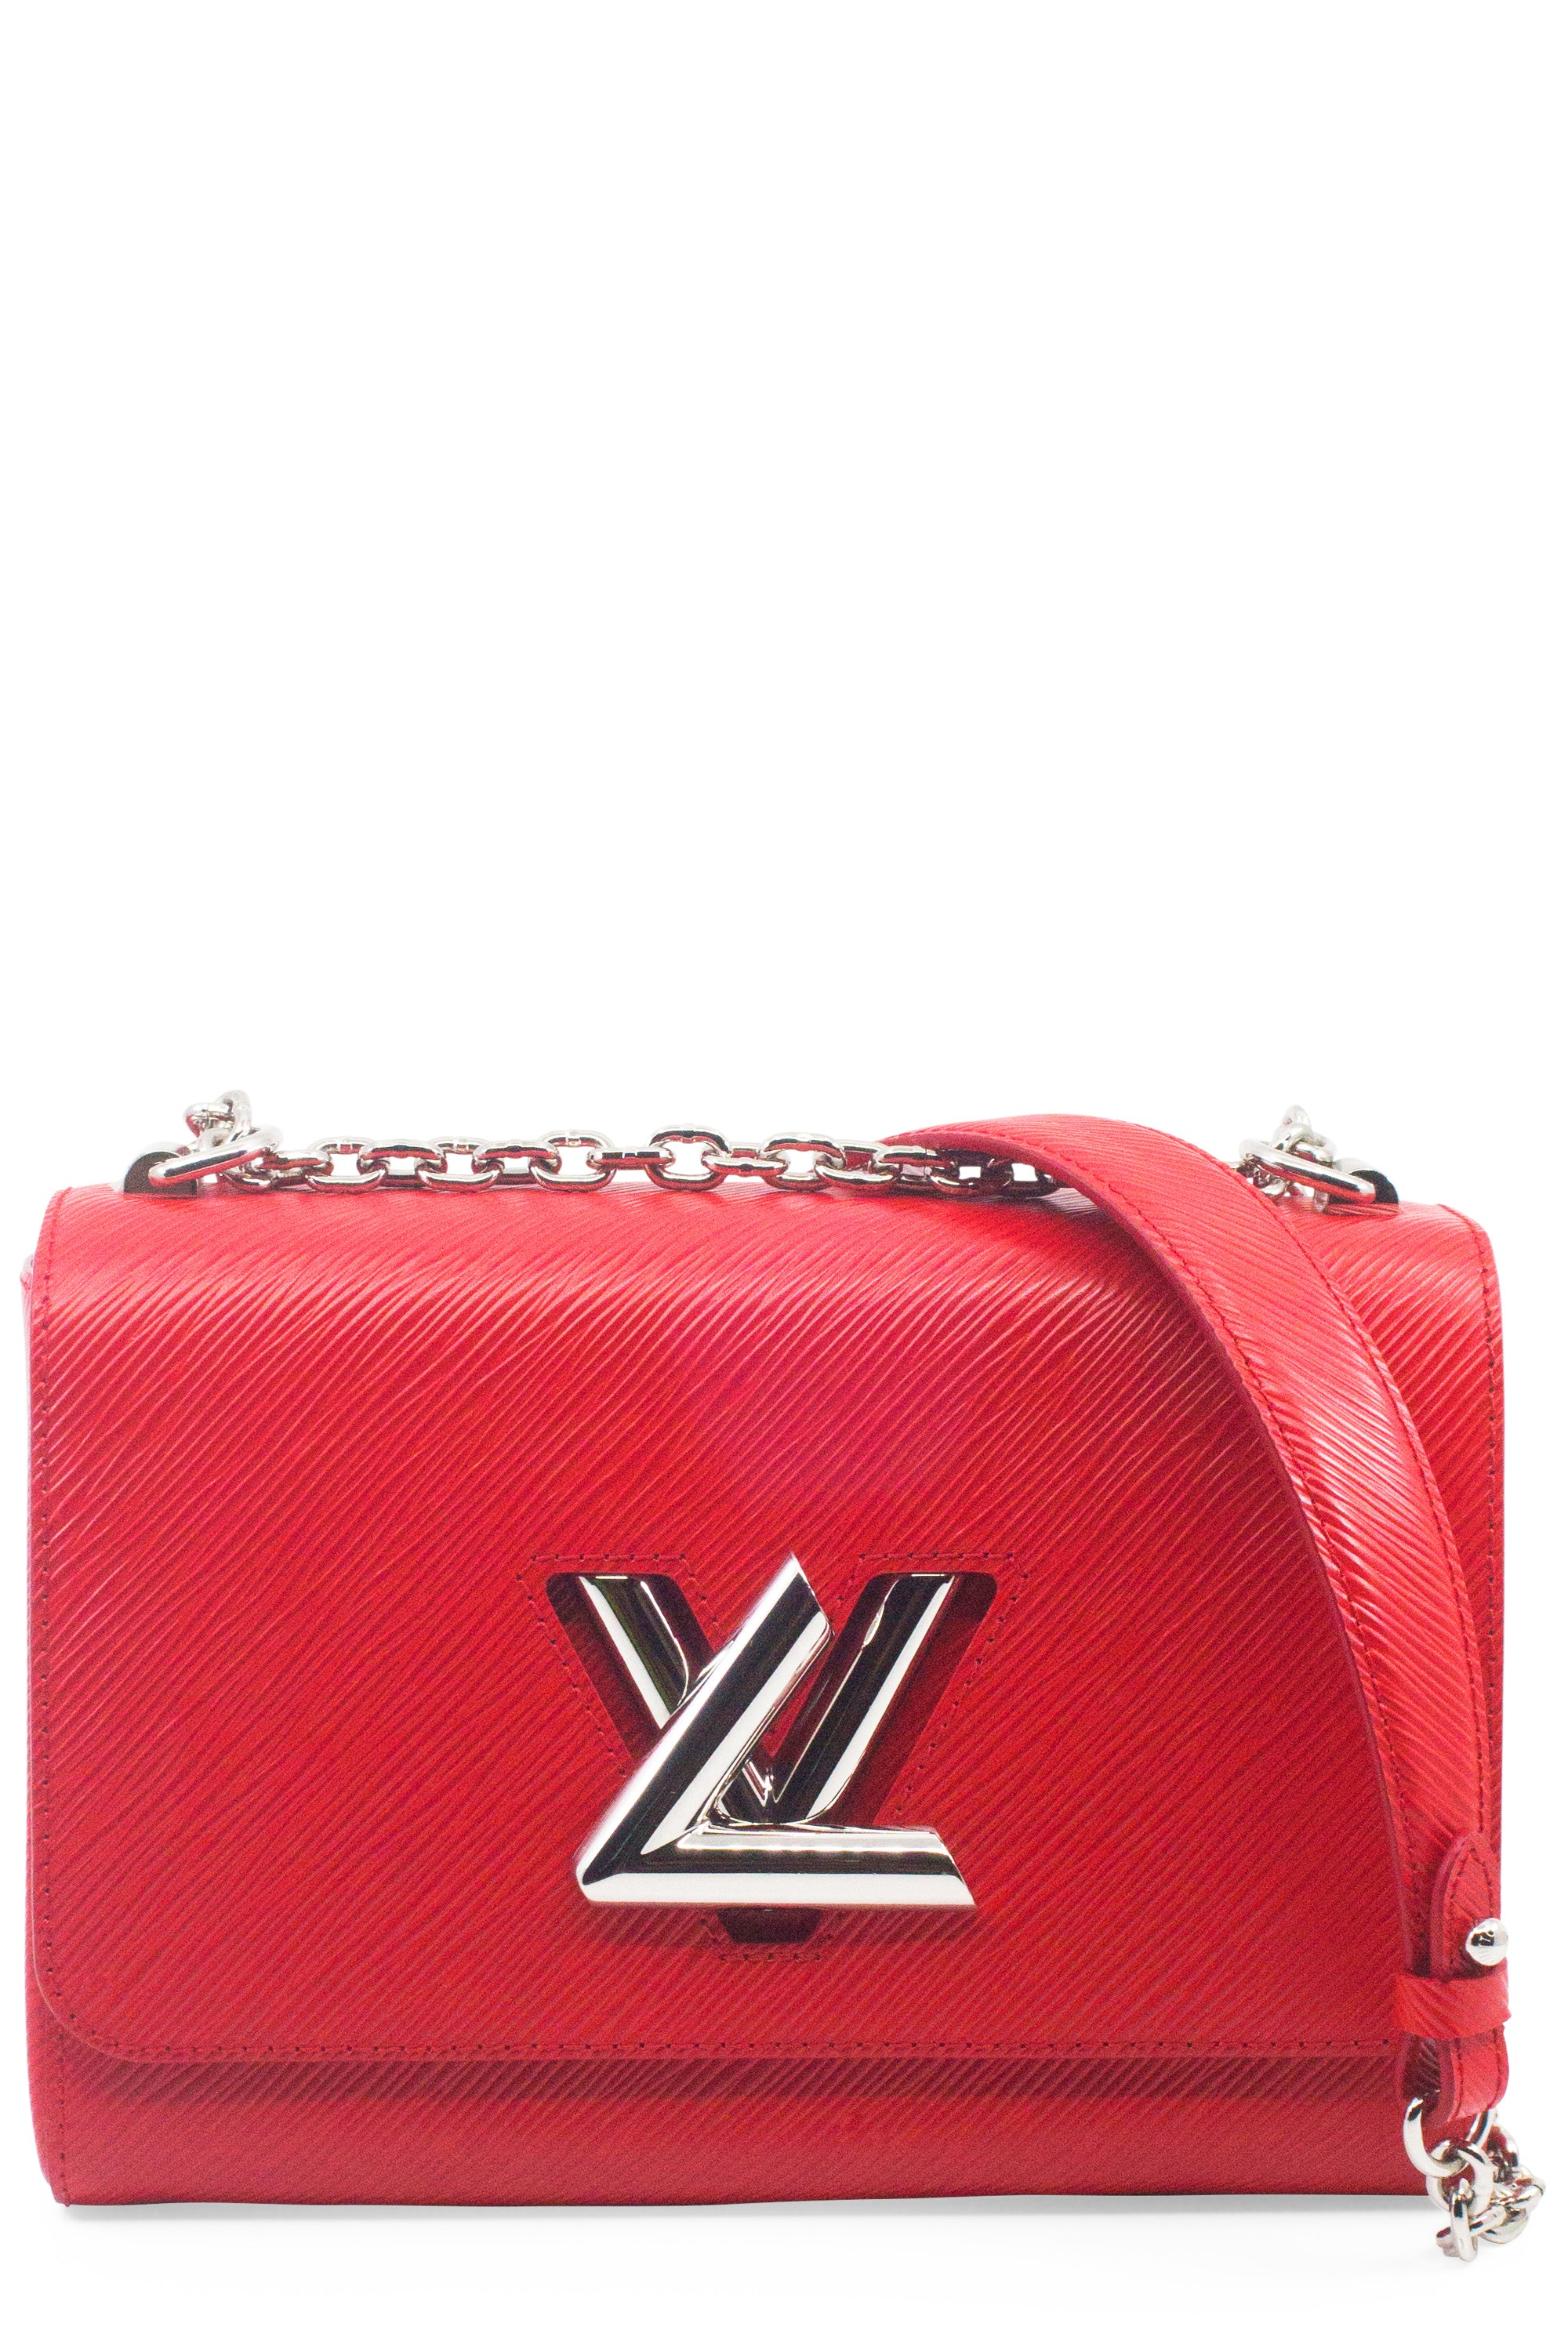 LOUIS VUITTON Twist MM Epi Red Frontansicht